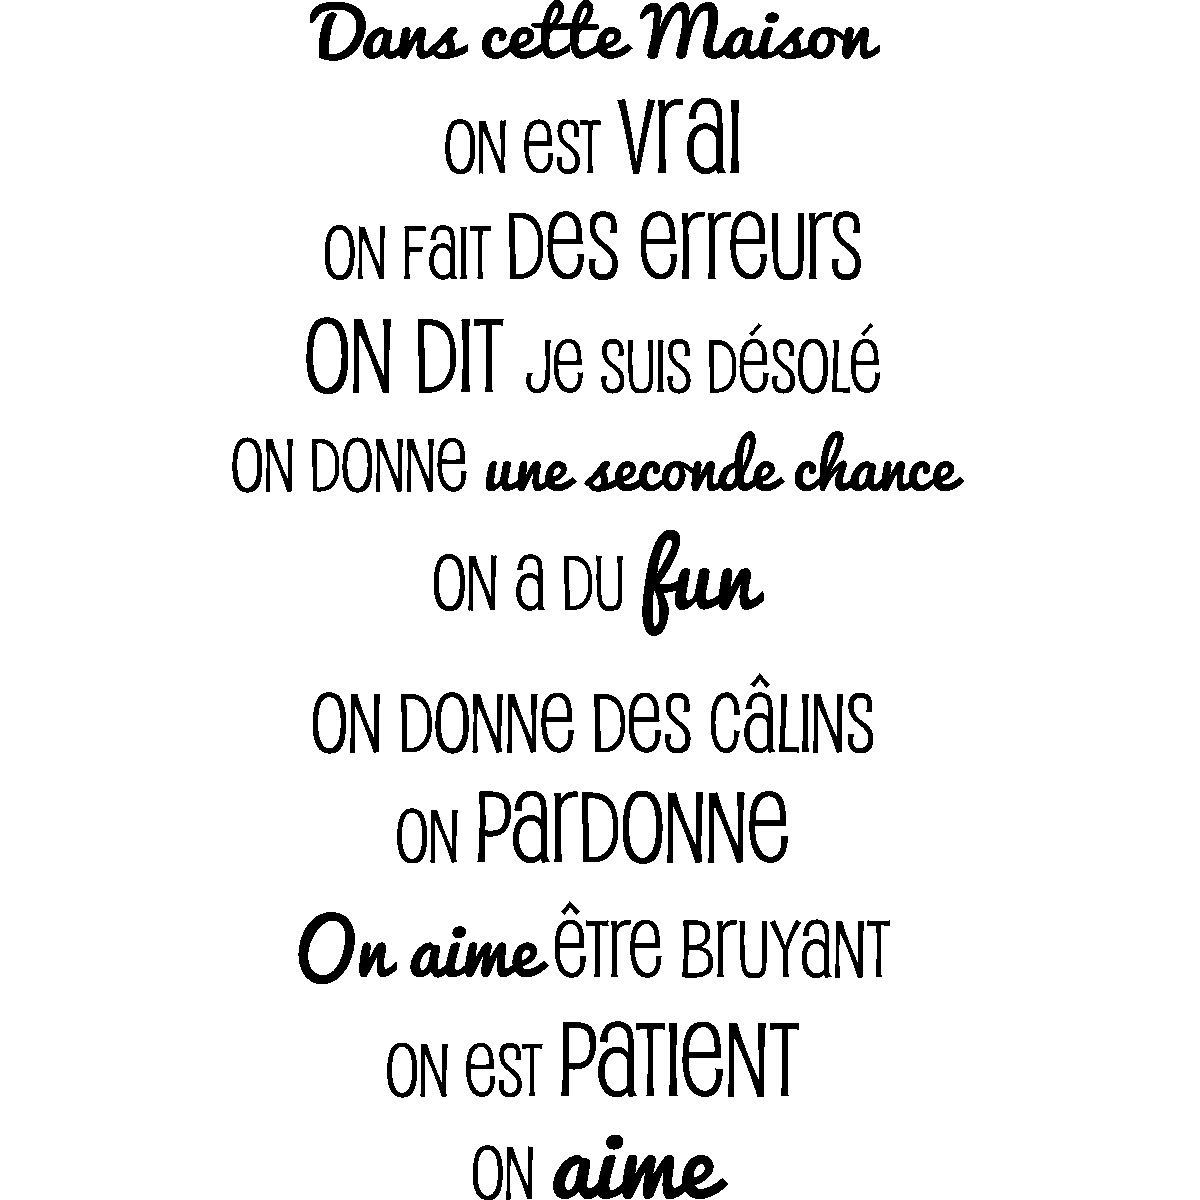 Sticker dans cette maison design stickers citations - Stickers dans cette maison ...